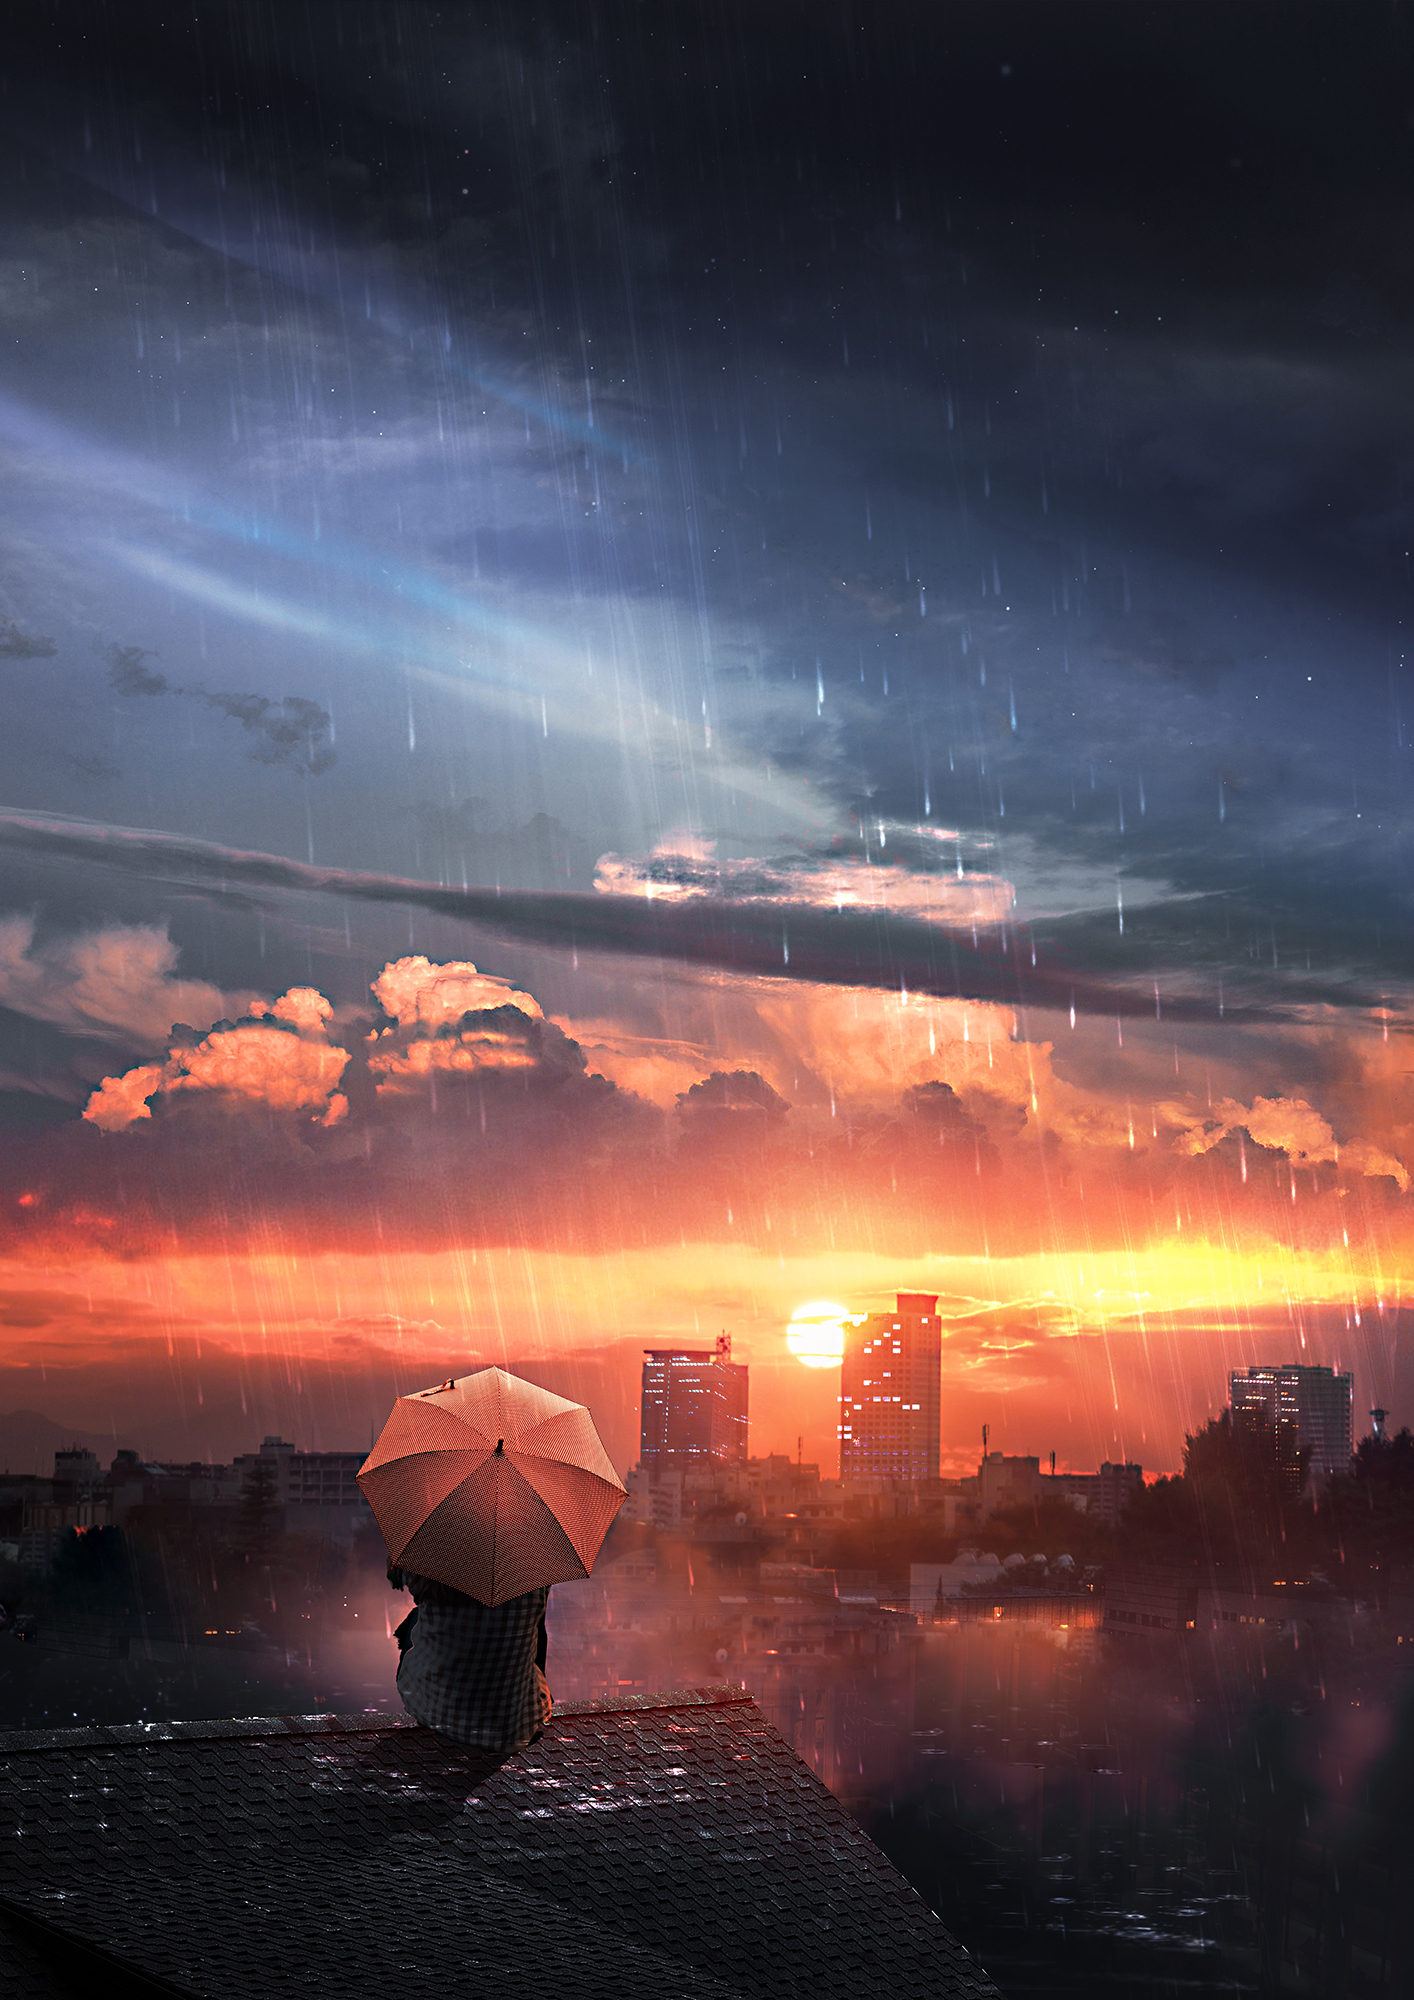 101244 download wallpaper Art, Roof, Rain, Umbrella, Night, Sky, Privacy, Seclusion, Loneliness screensavers and pictures for free